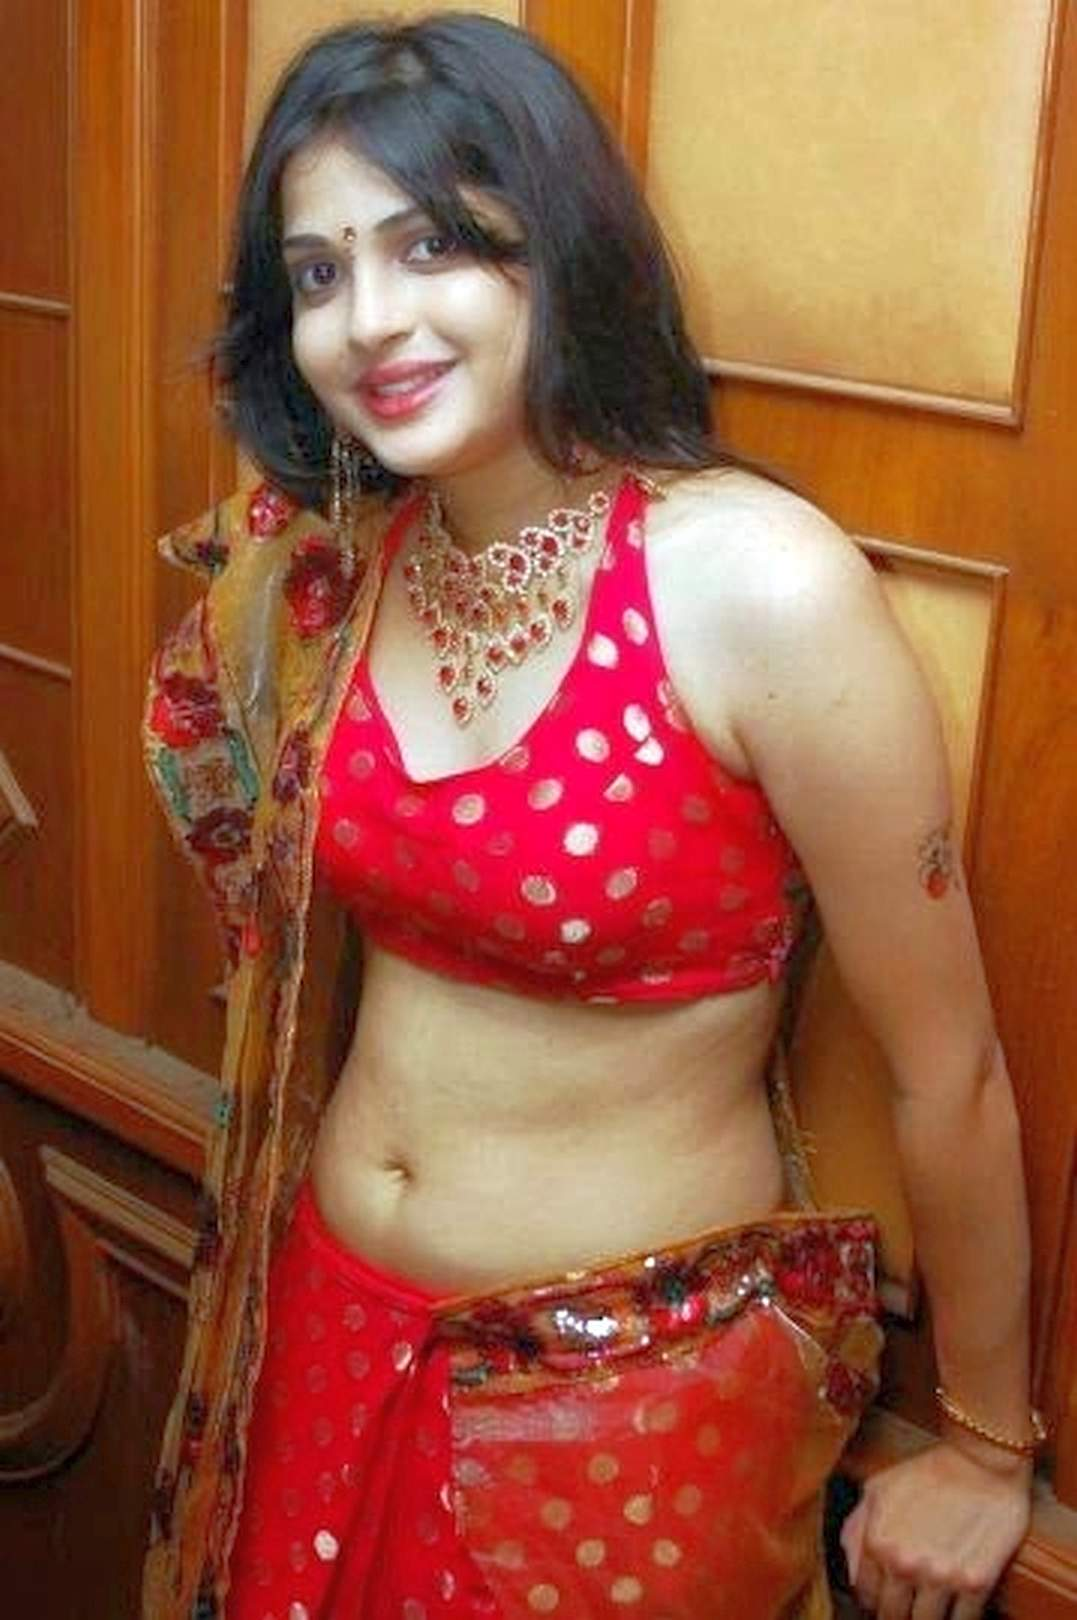 Hot Desi Chicks Real Life  Hot Navel Pics-8235